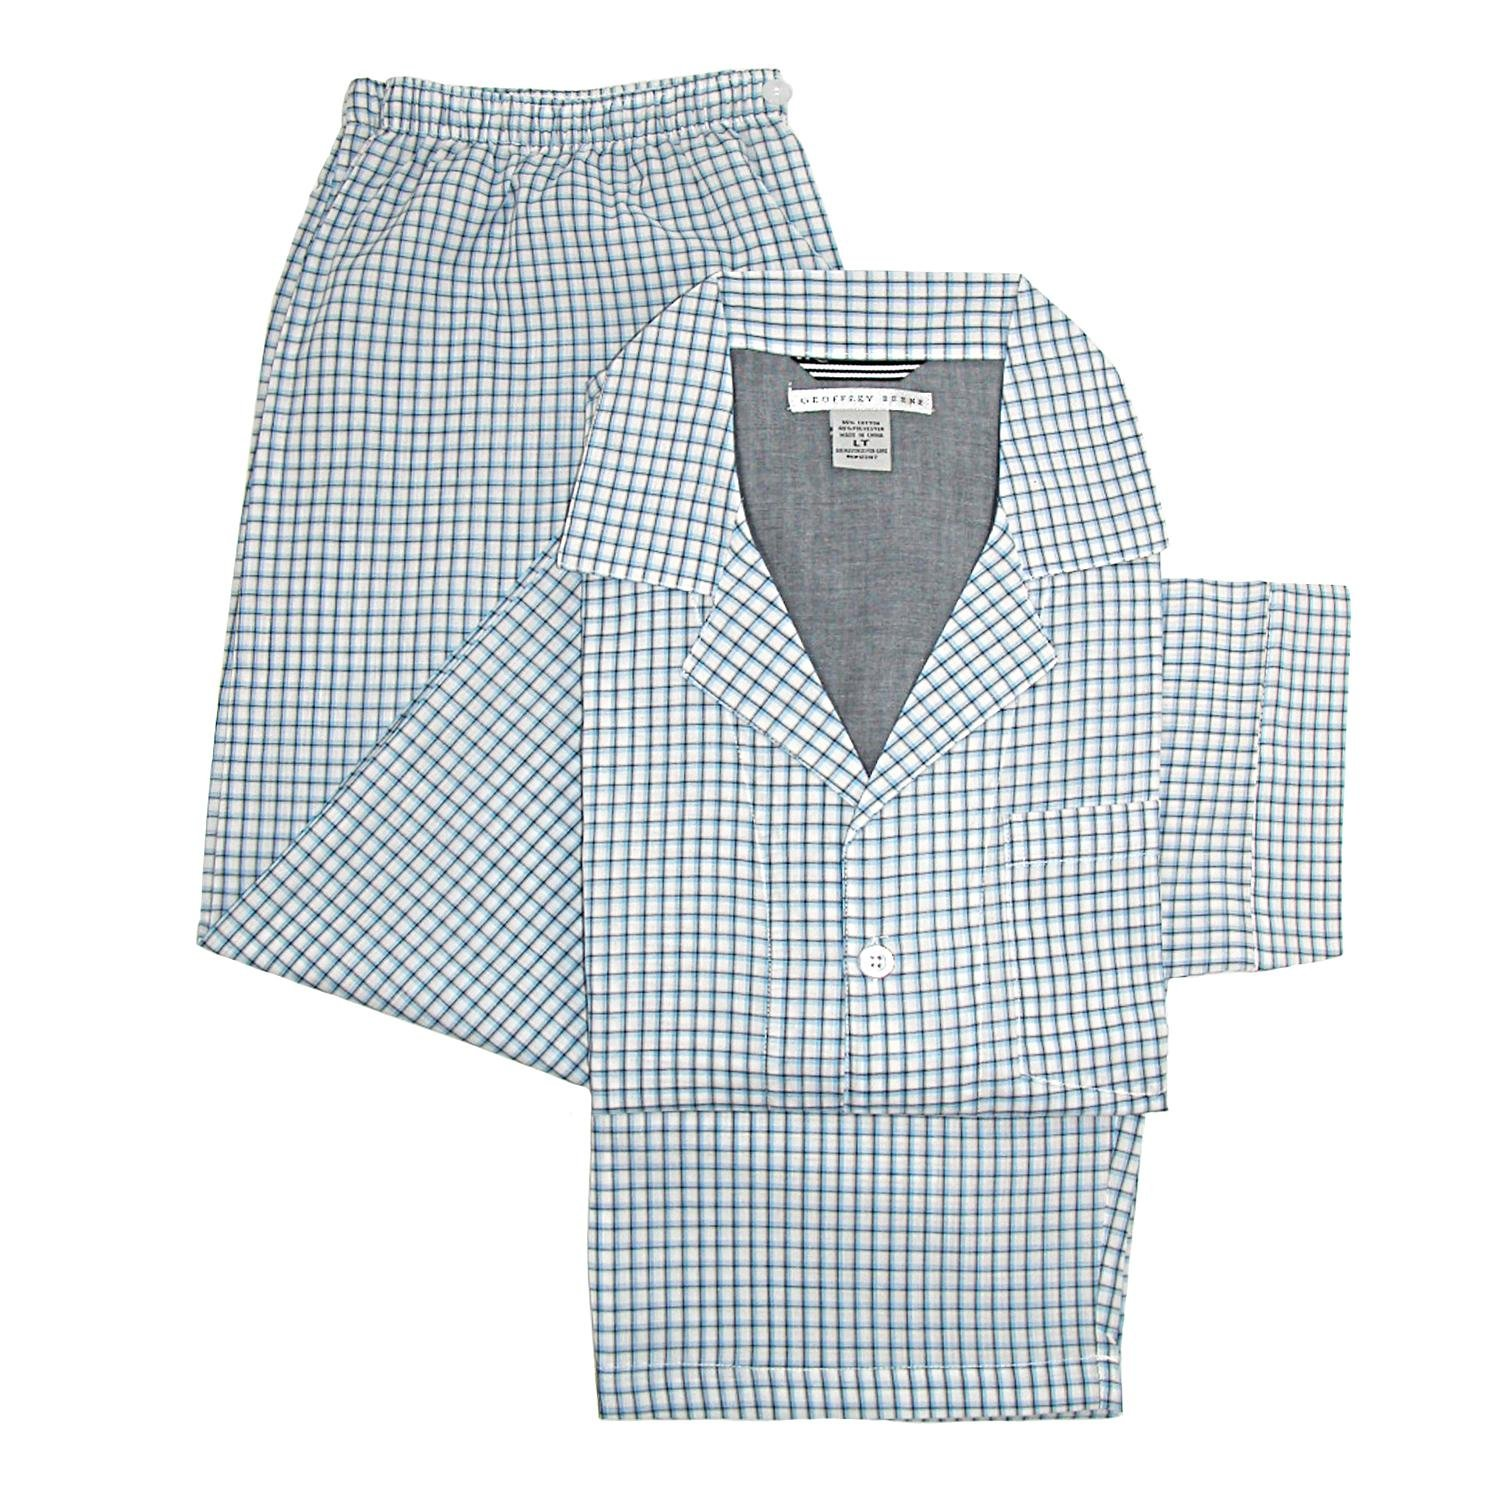 Geoffrey Beene Men's Long Sleeve Long Pant Pajama Set